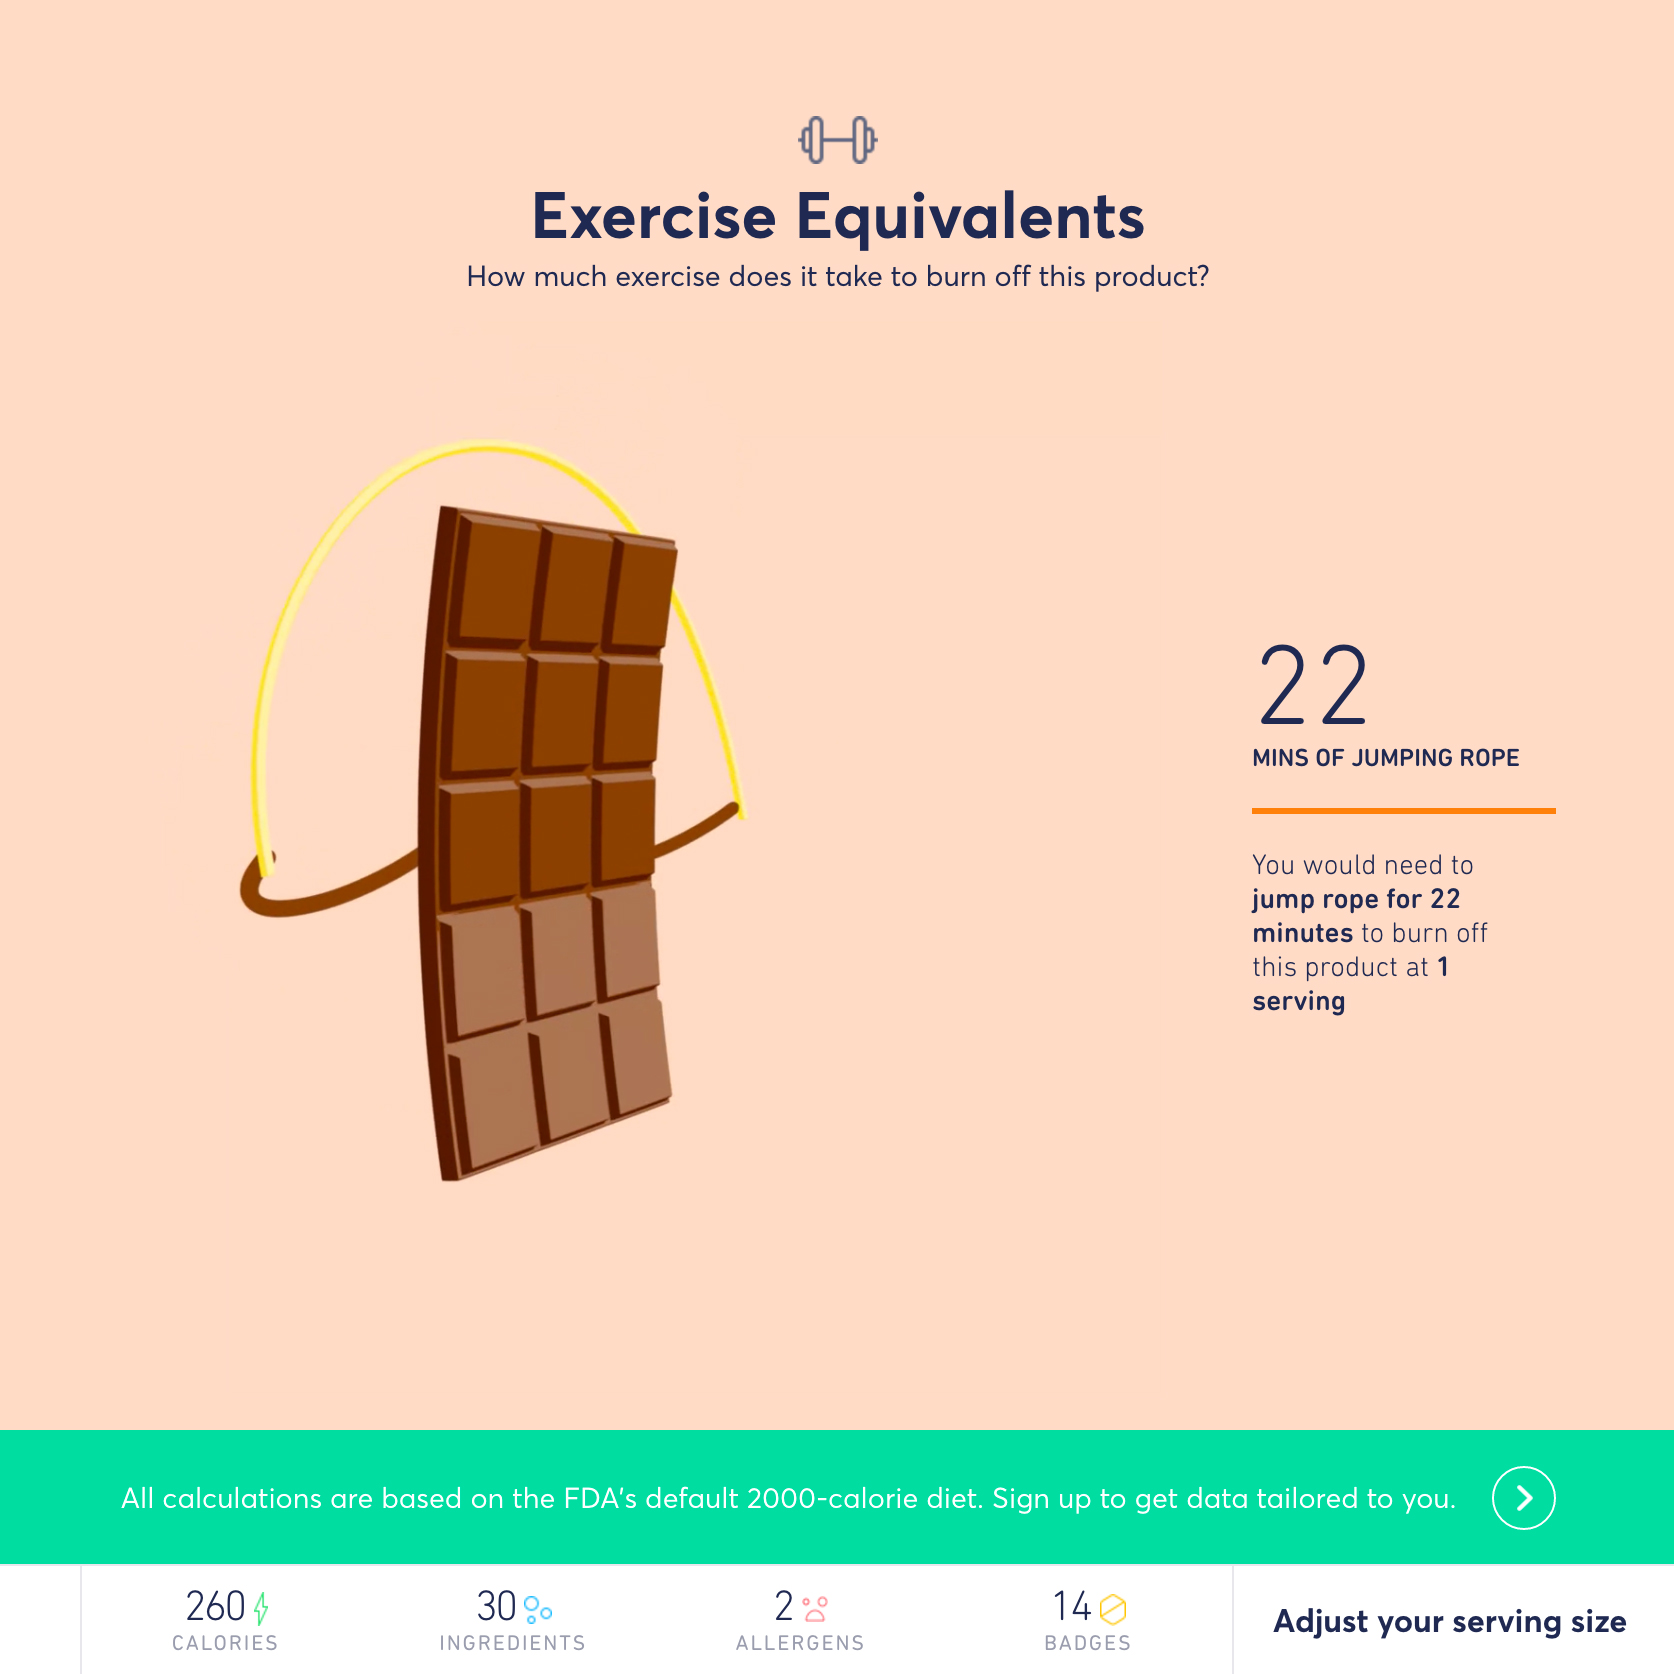 exercise-equivalents-sage-project-app-fwx